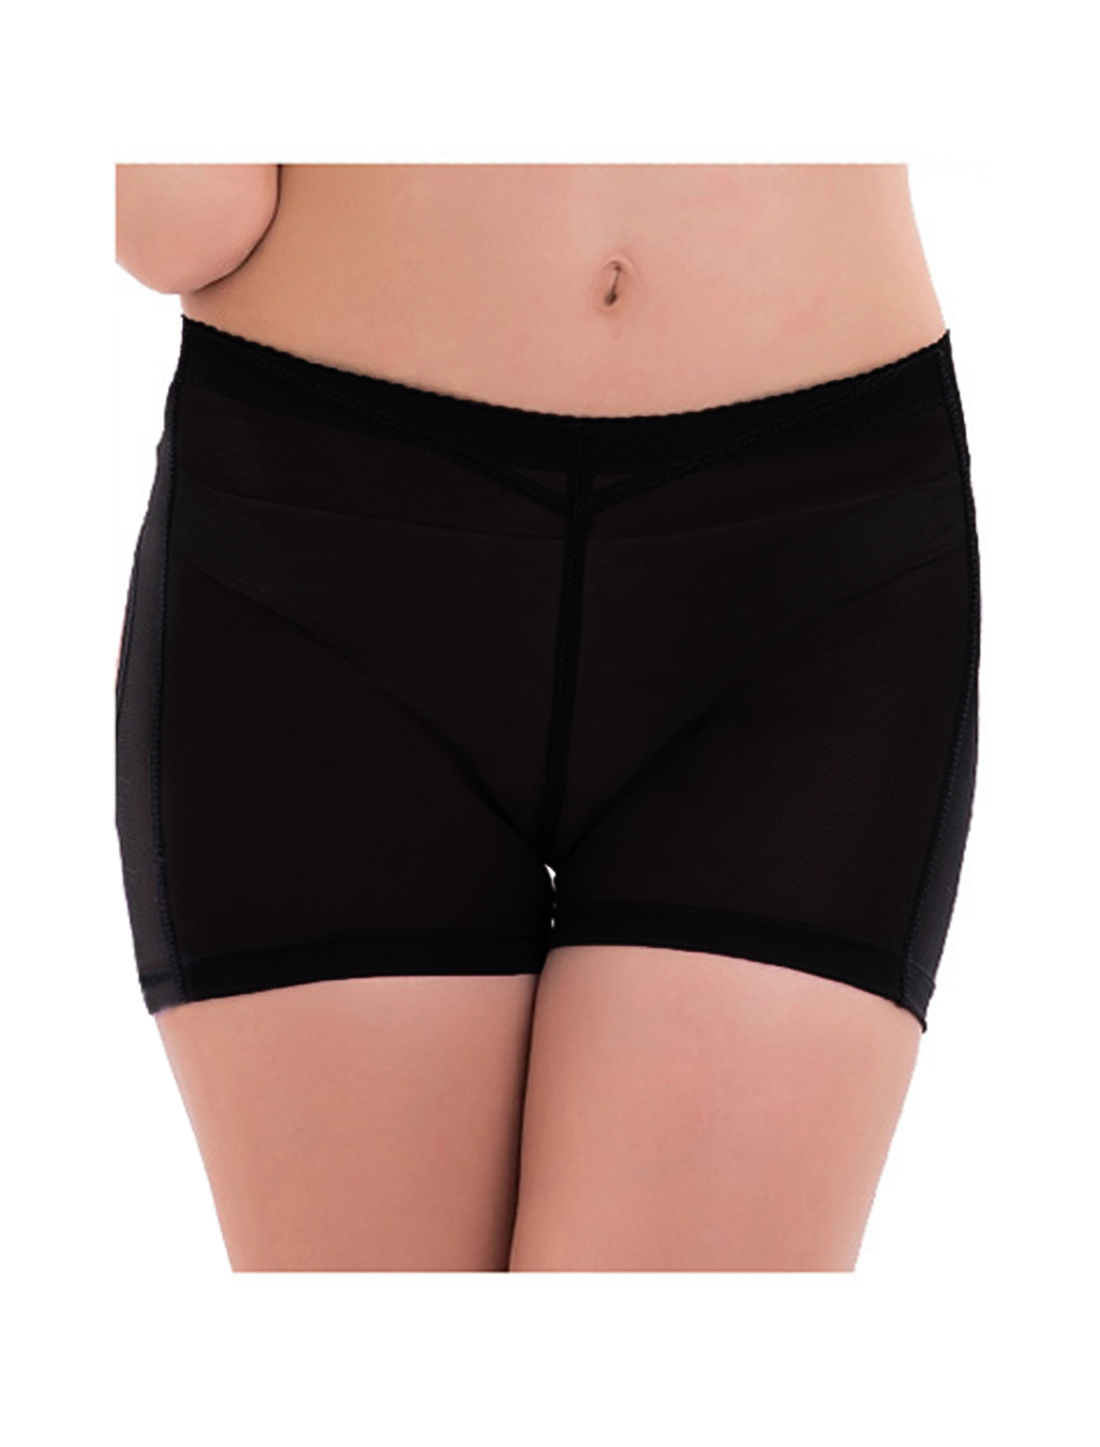 Women Butt Lifter Tummy Control Shapewear Enhancer Boyshort Underwear Black X-Large